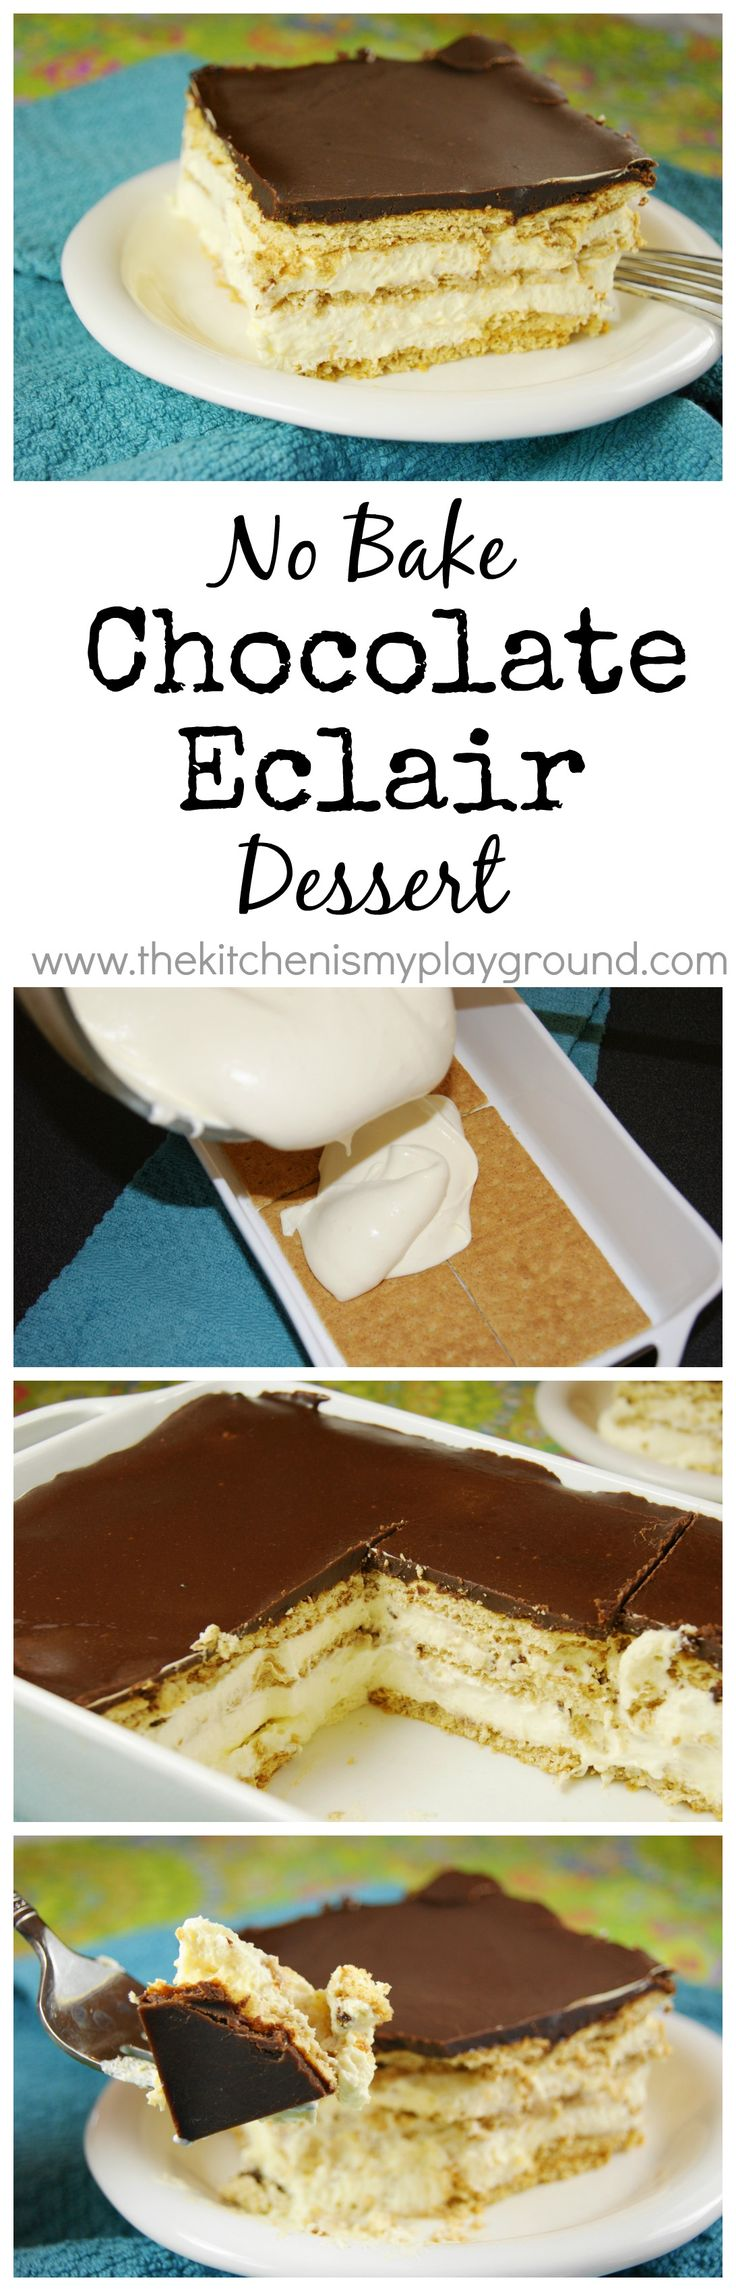 Creamy & delicious No-Bake Chocolate Eclair Dessert